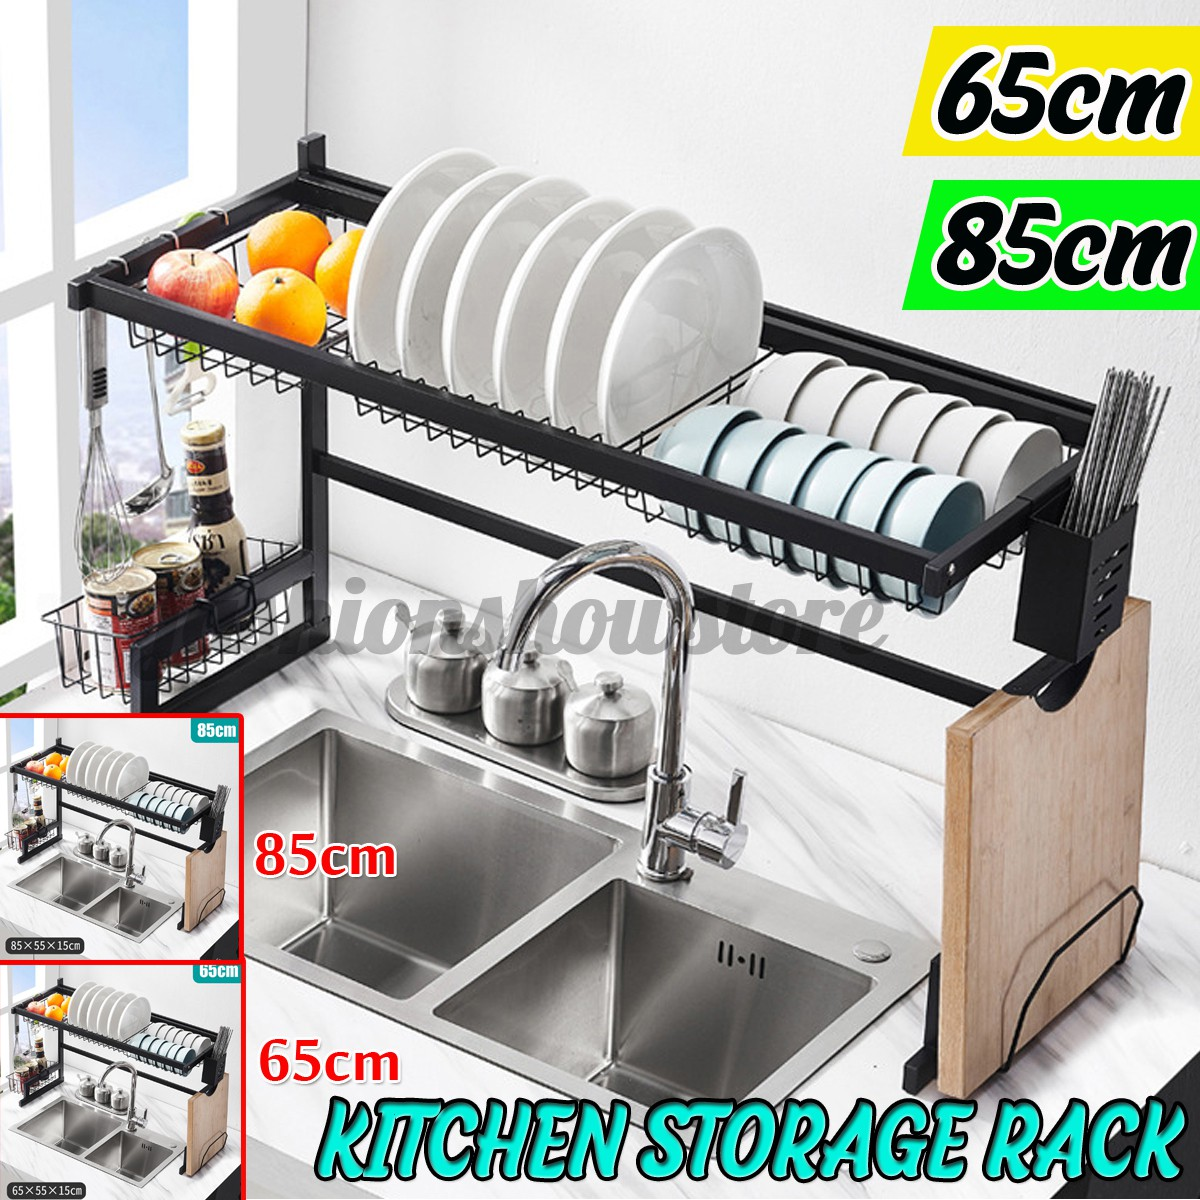 stainless steel large dish drainer drying rack kitchen storage holders 65 85cm